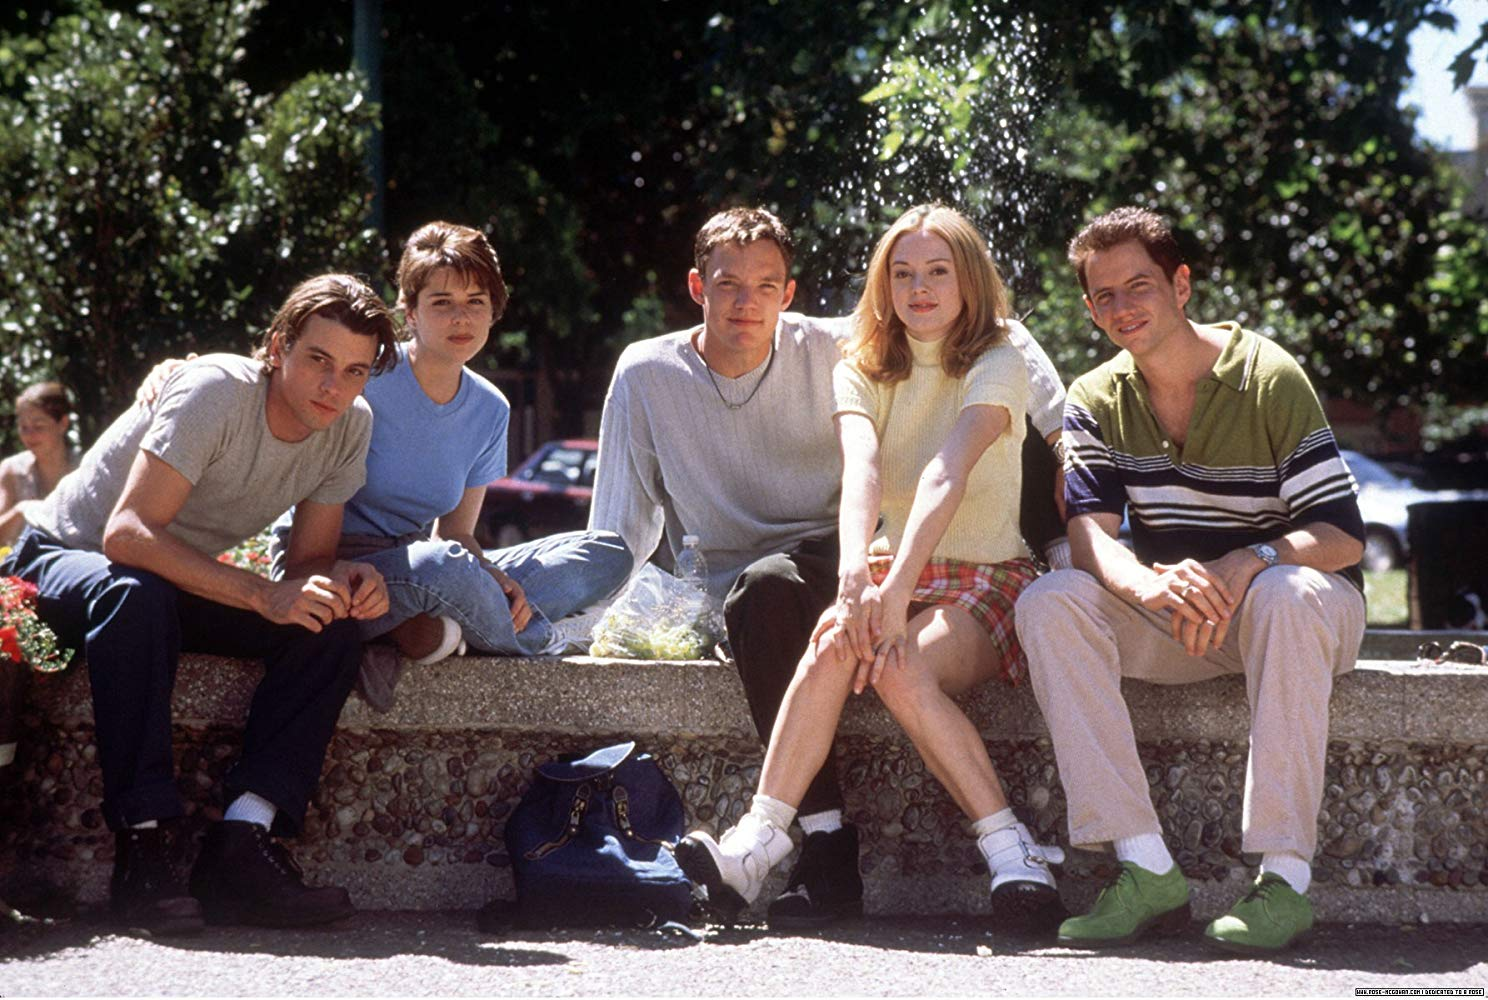 Cast line-up - (l to r) Skeet Ulrich, Neve Campbell,, Matthew Lillard, Rose McGowan and Jamie Kennedy in Scream (1996)